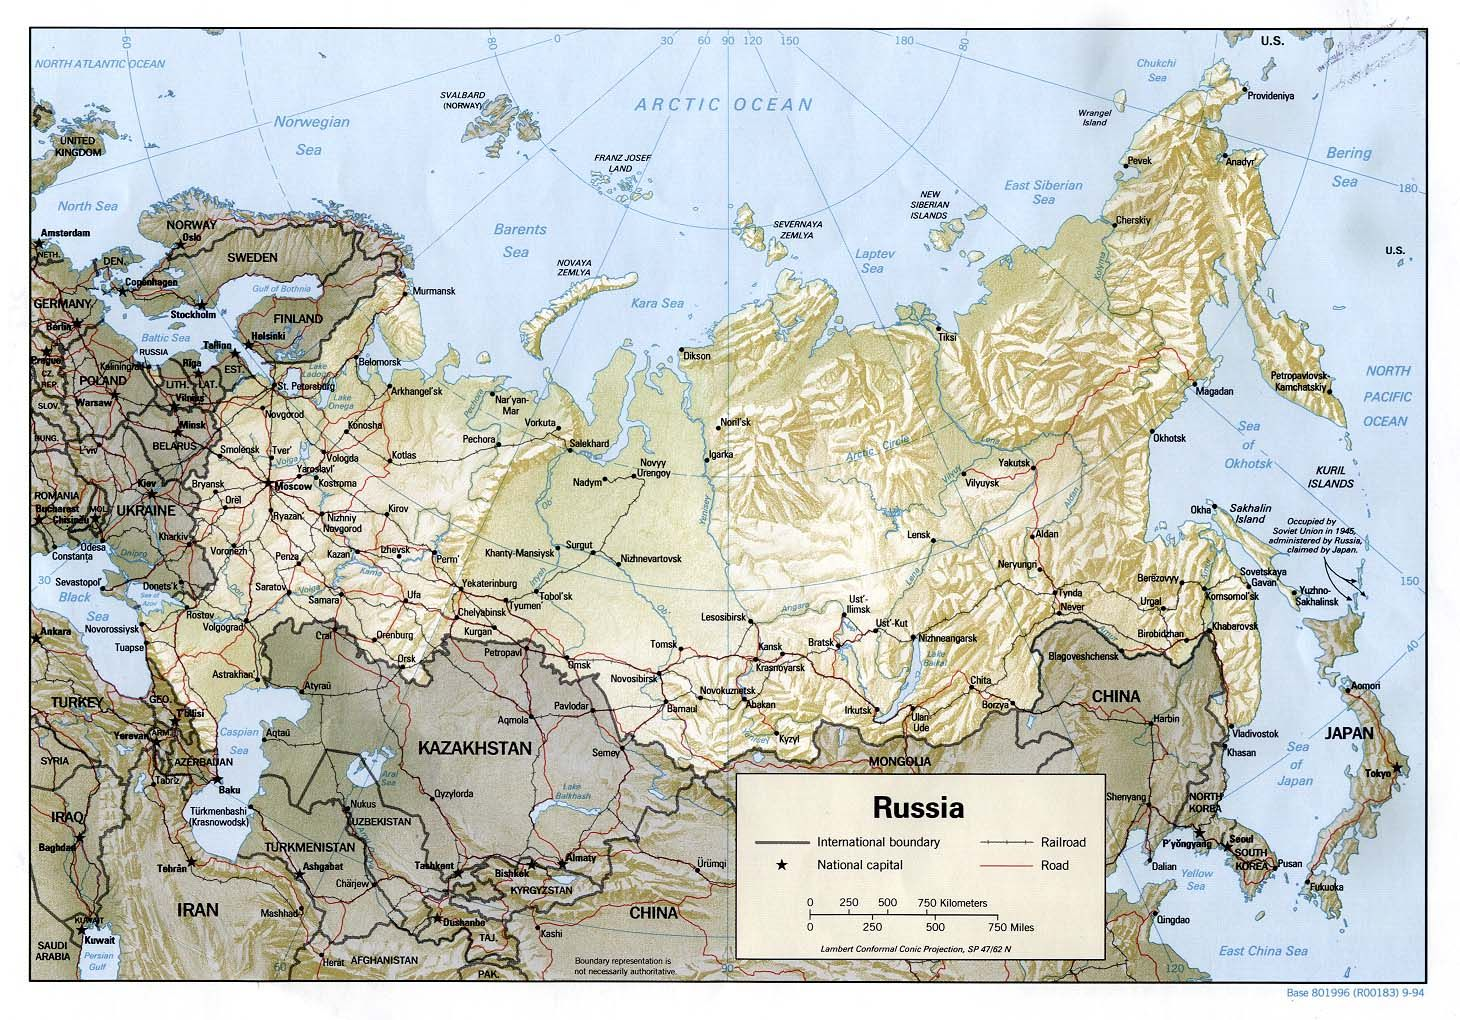 map of Siberia   Siberia   Russia map, Russia, Map Kazakhstan Map Of Siberia on map of nepal, map of aral sea, map of central asia, map of sri lanka, map of pakistan, map of moldova, map of kyrgyzstan, map of belarus, map of uzbekistan, map of indian ocean, map of korea, map of canada, map of azerbaijan, map of finland, map of northern asia, map of southeast asia, map of macau, map of dagestan, map of ethiopia, map of usa,